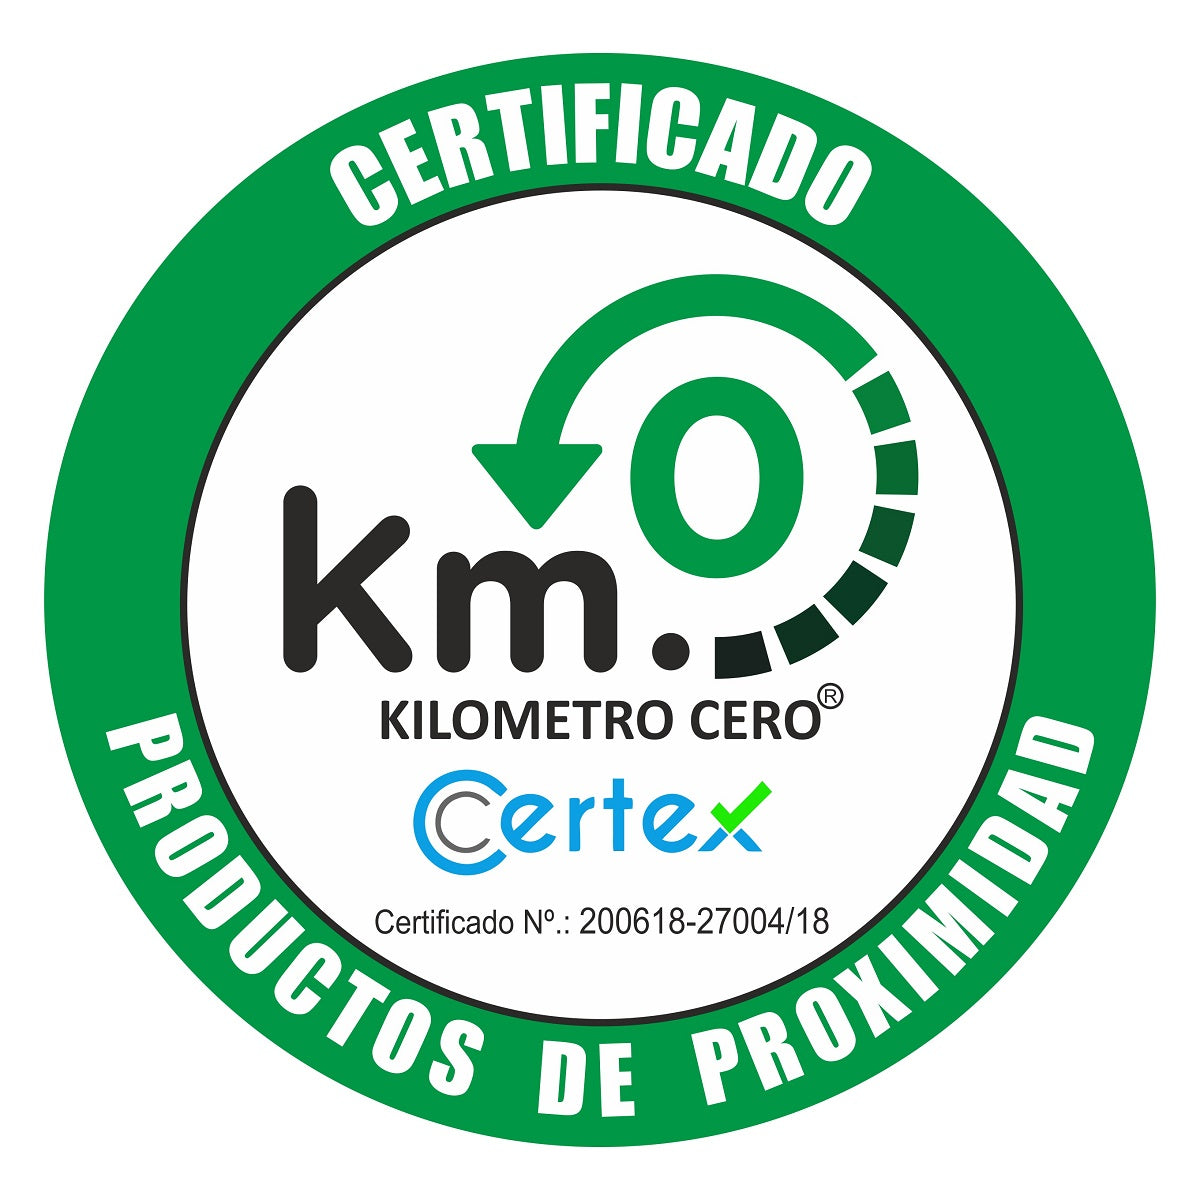 Kilometro Cero km.0 certification locally grown by local farmers